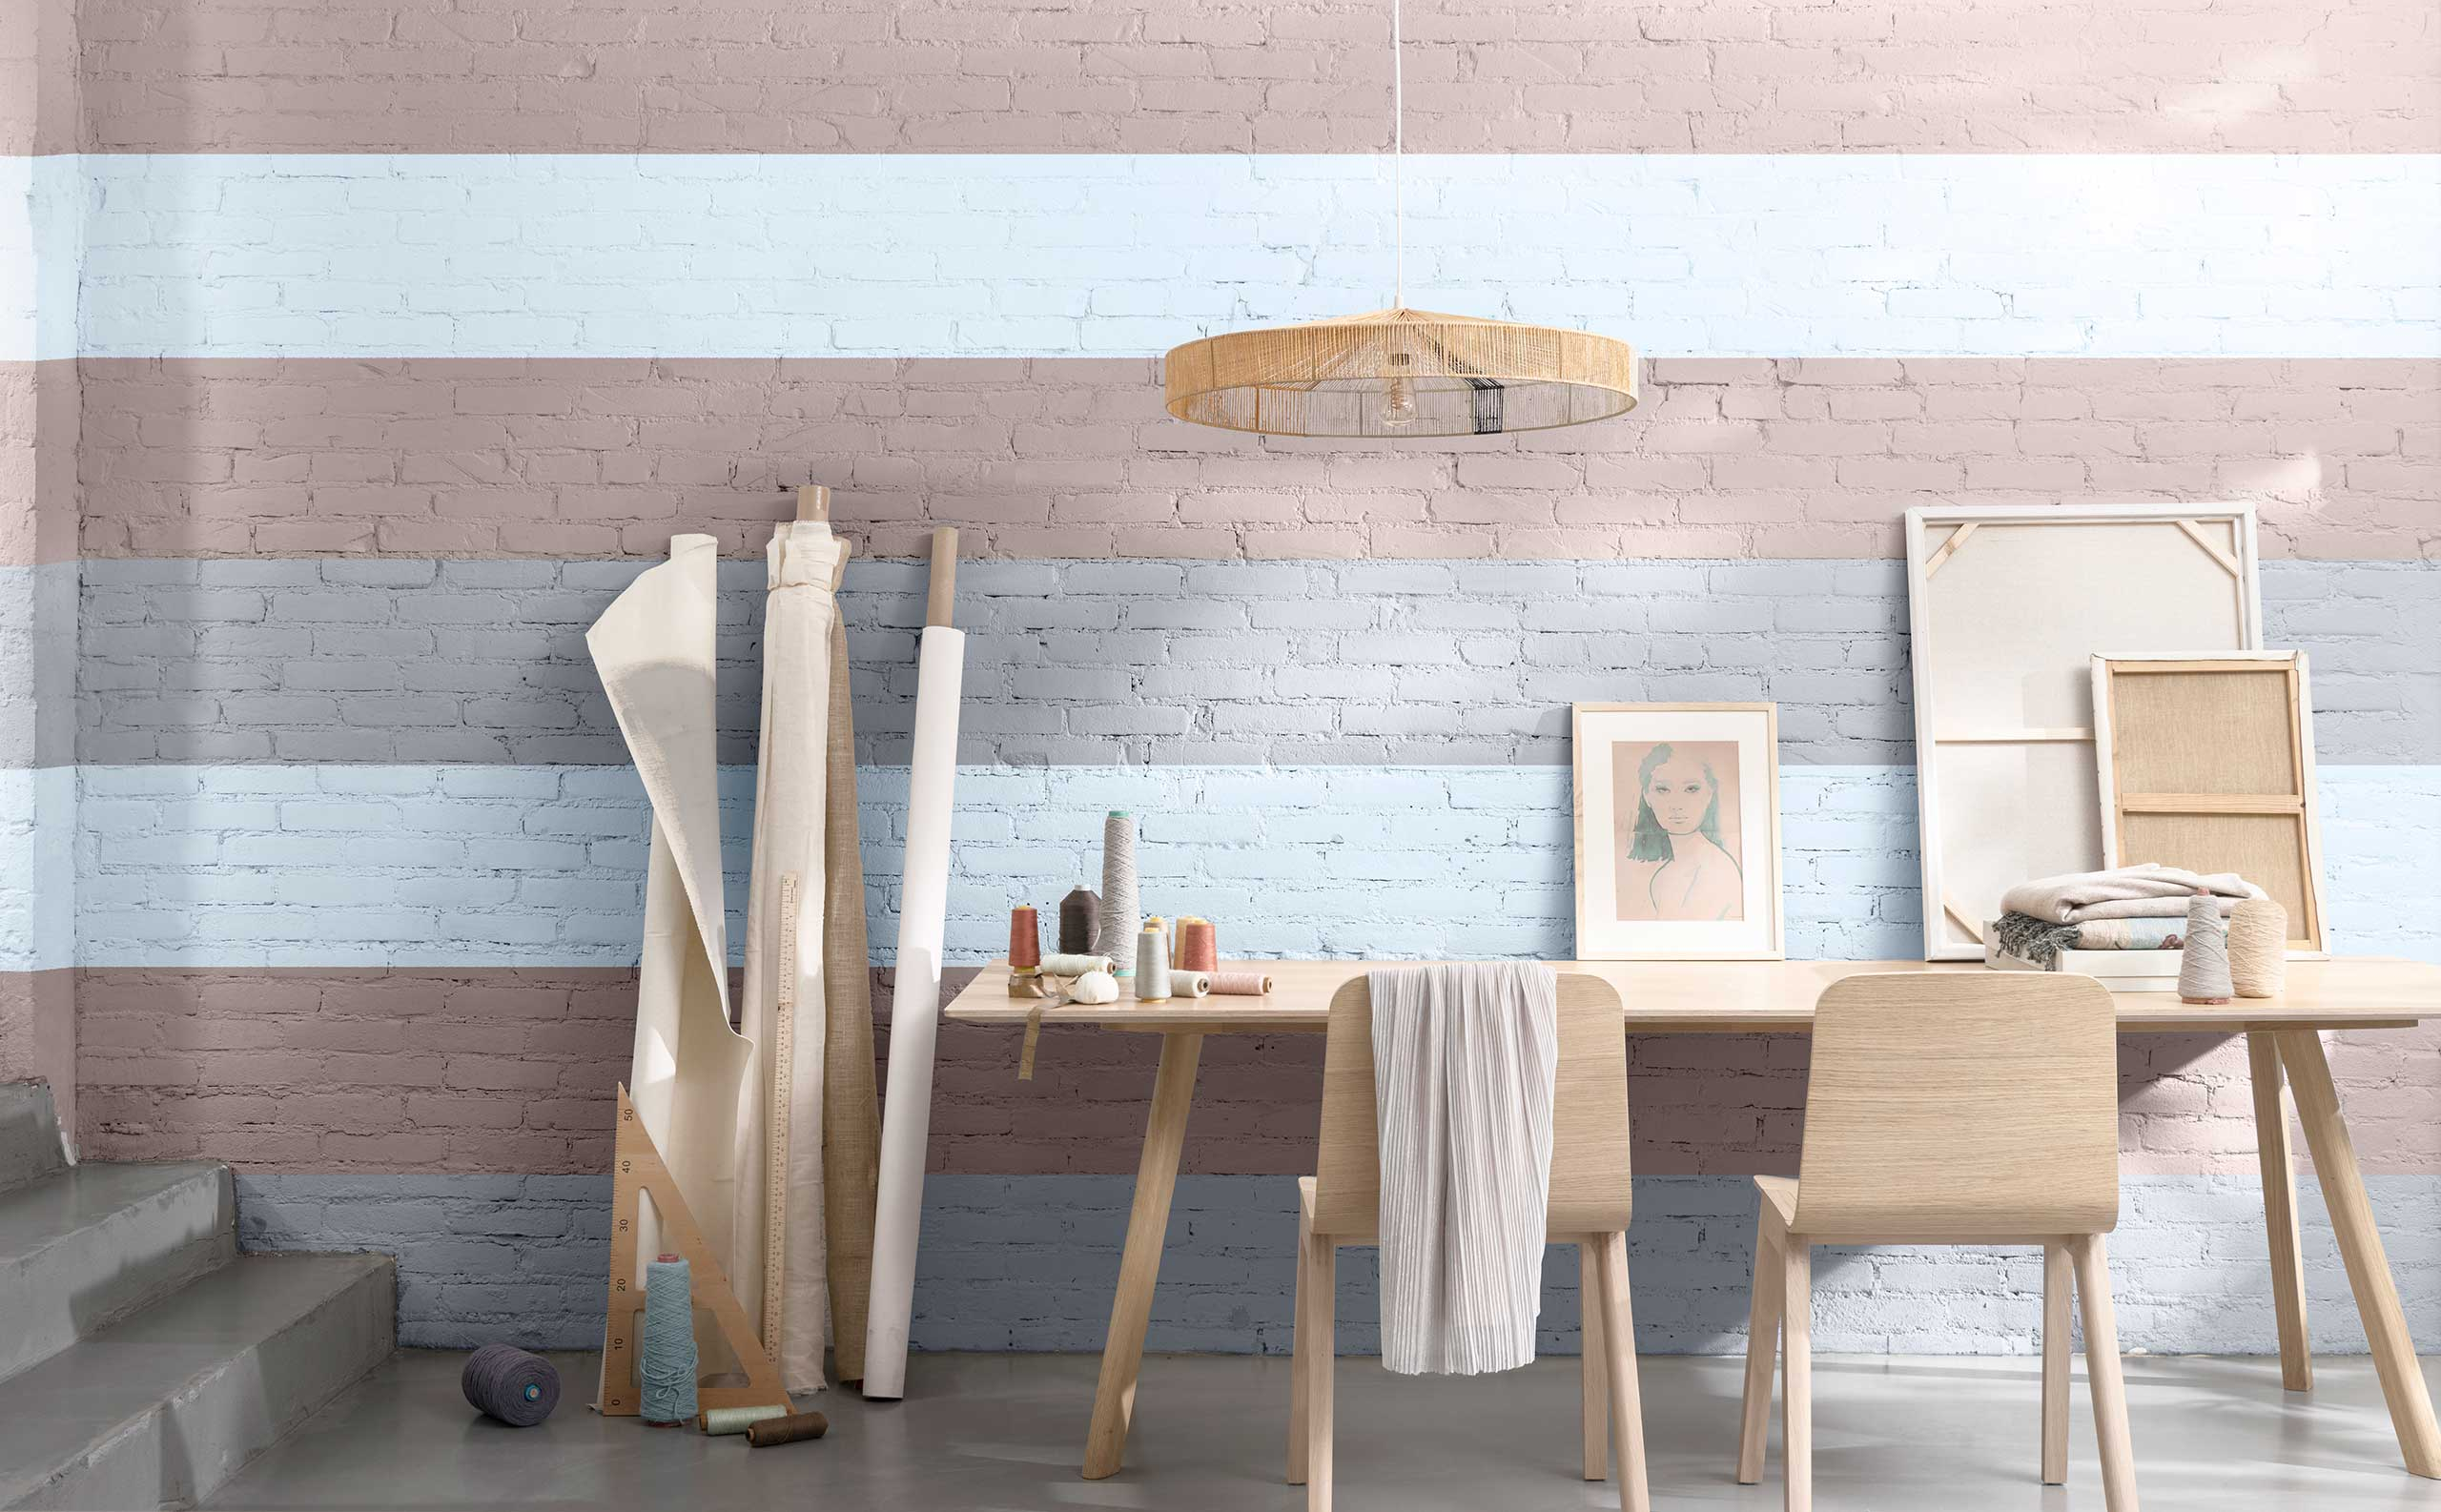 Dulux-Colour-Futures-Colour-of-the-Year-2022-The-Studio-Colours-HomeOffice-Inspiration-Global-8